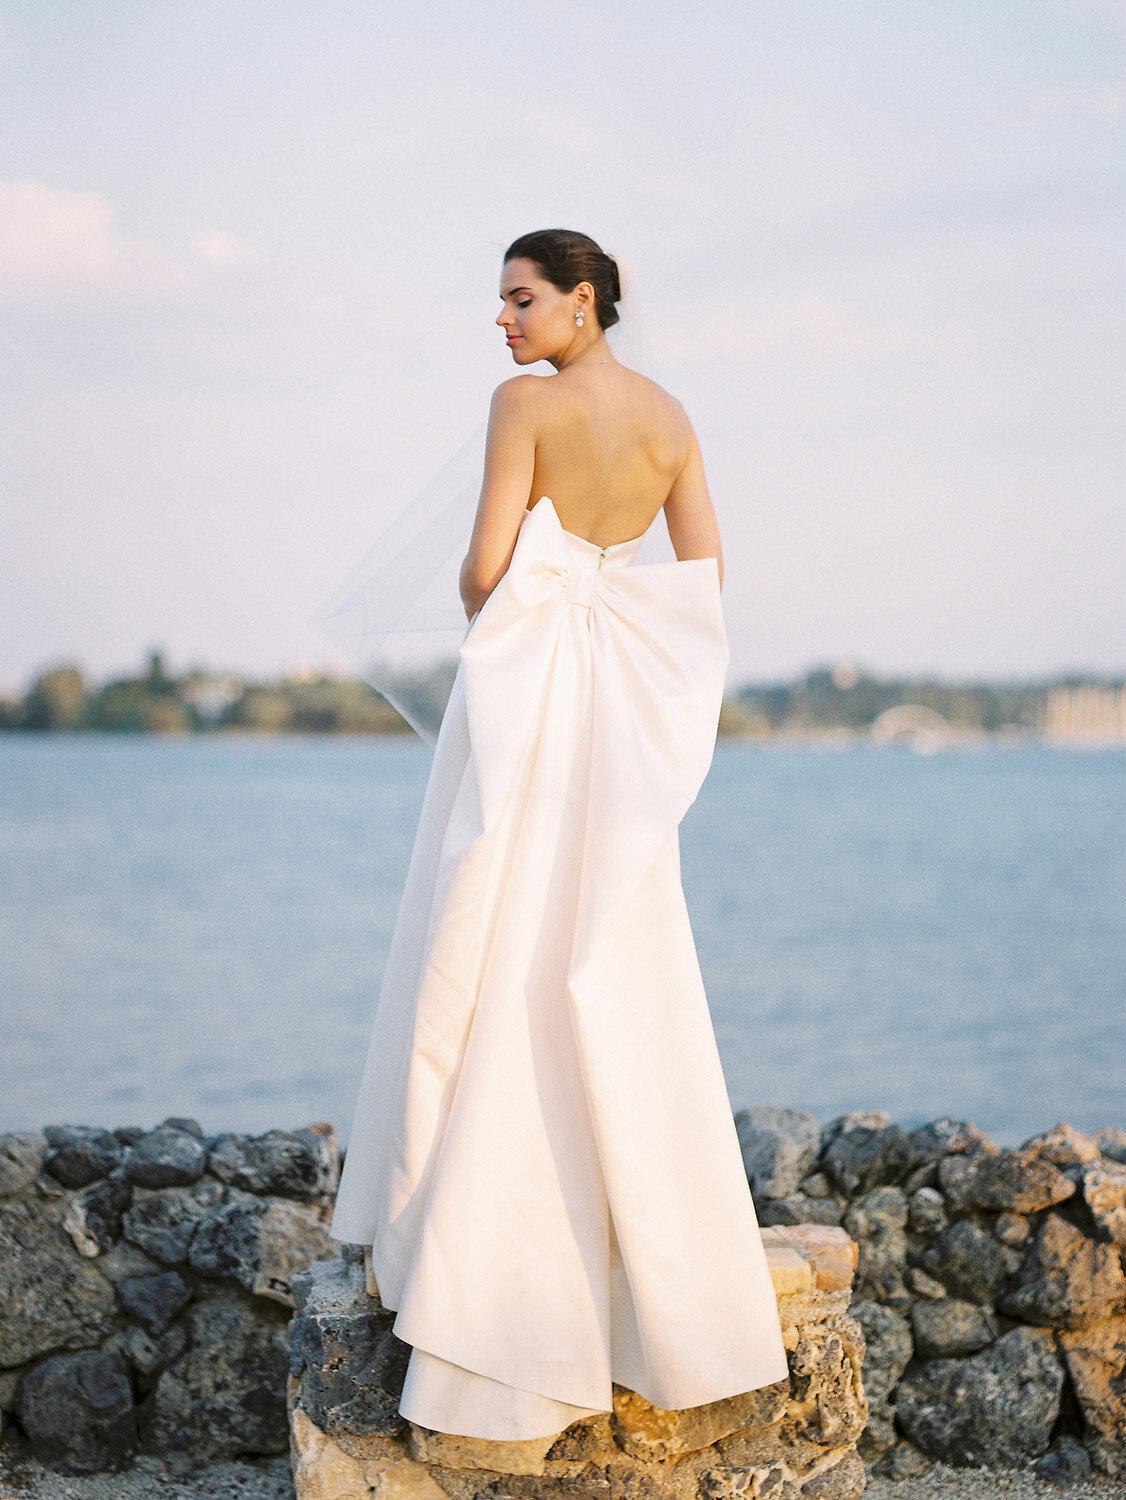 Greece-film-wedding-photography-by-Kostis-Mouselimis_074